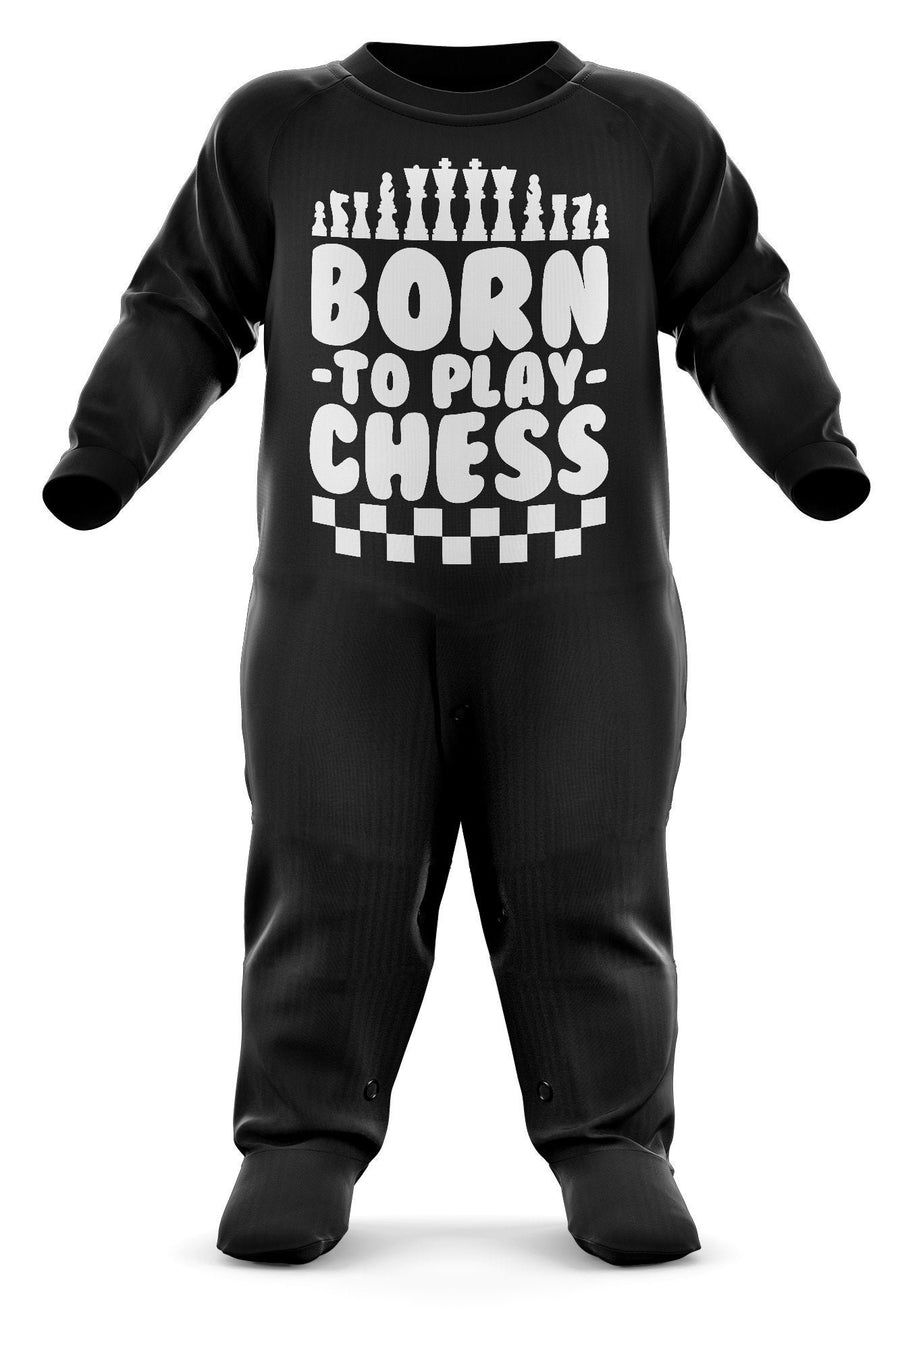 # Born To Play Chess Babygrow - Board Games Baby Romper Suit - Babies Chess Christmas Gift - Birthday Present - Newborn Romper